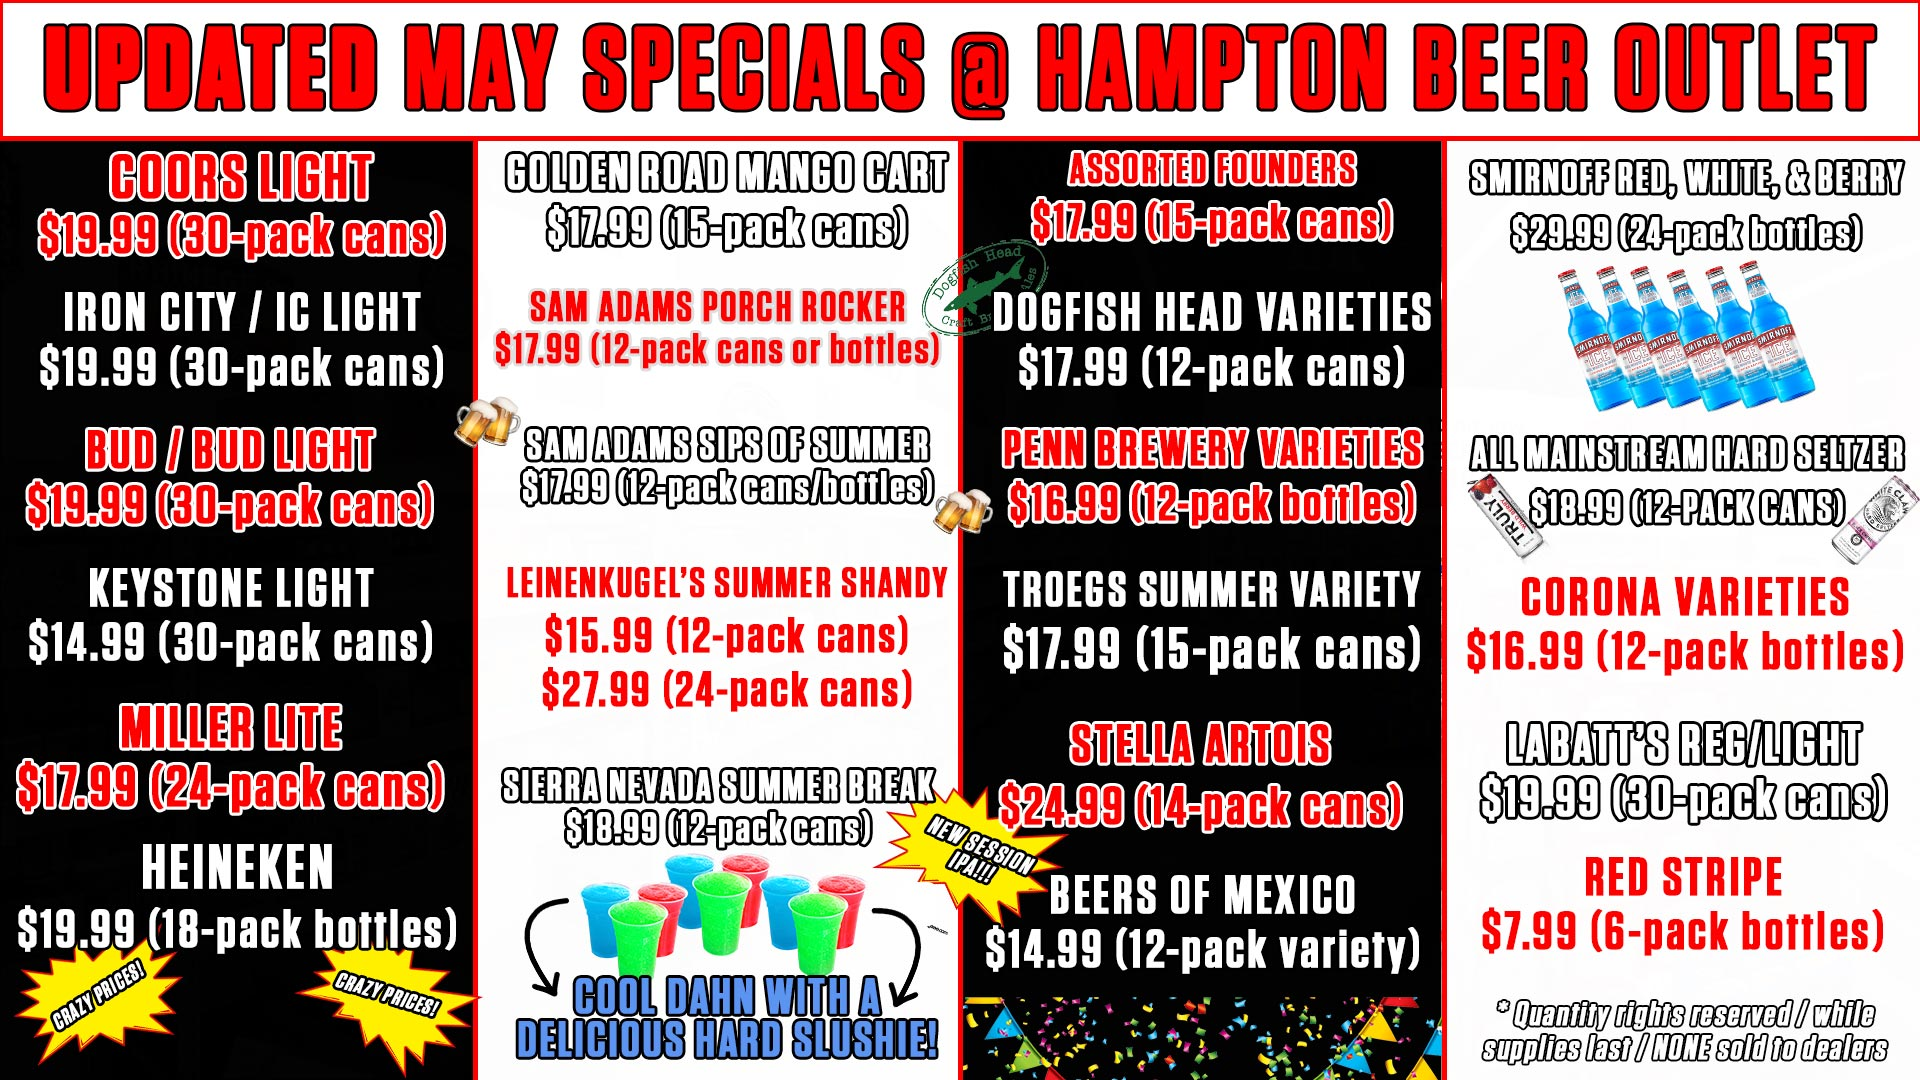 may-specials-updated-hampton-beer-outlet